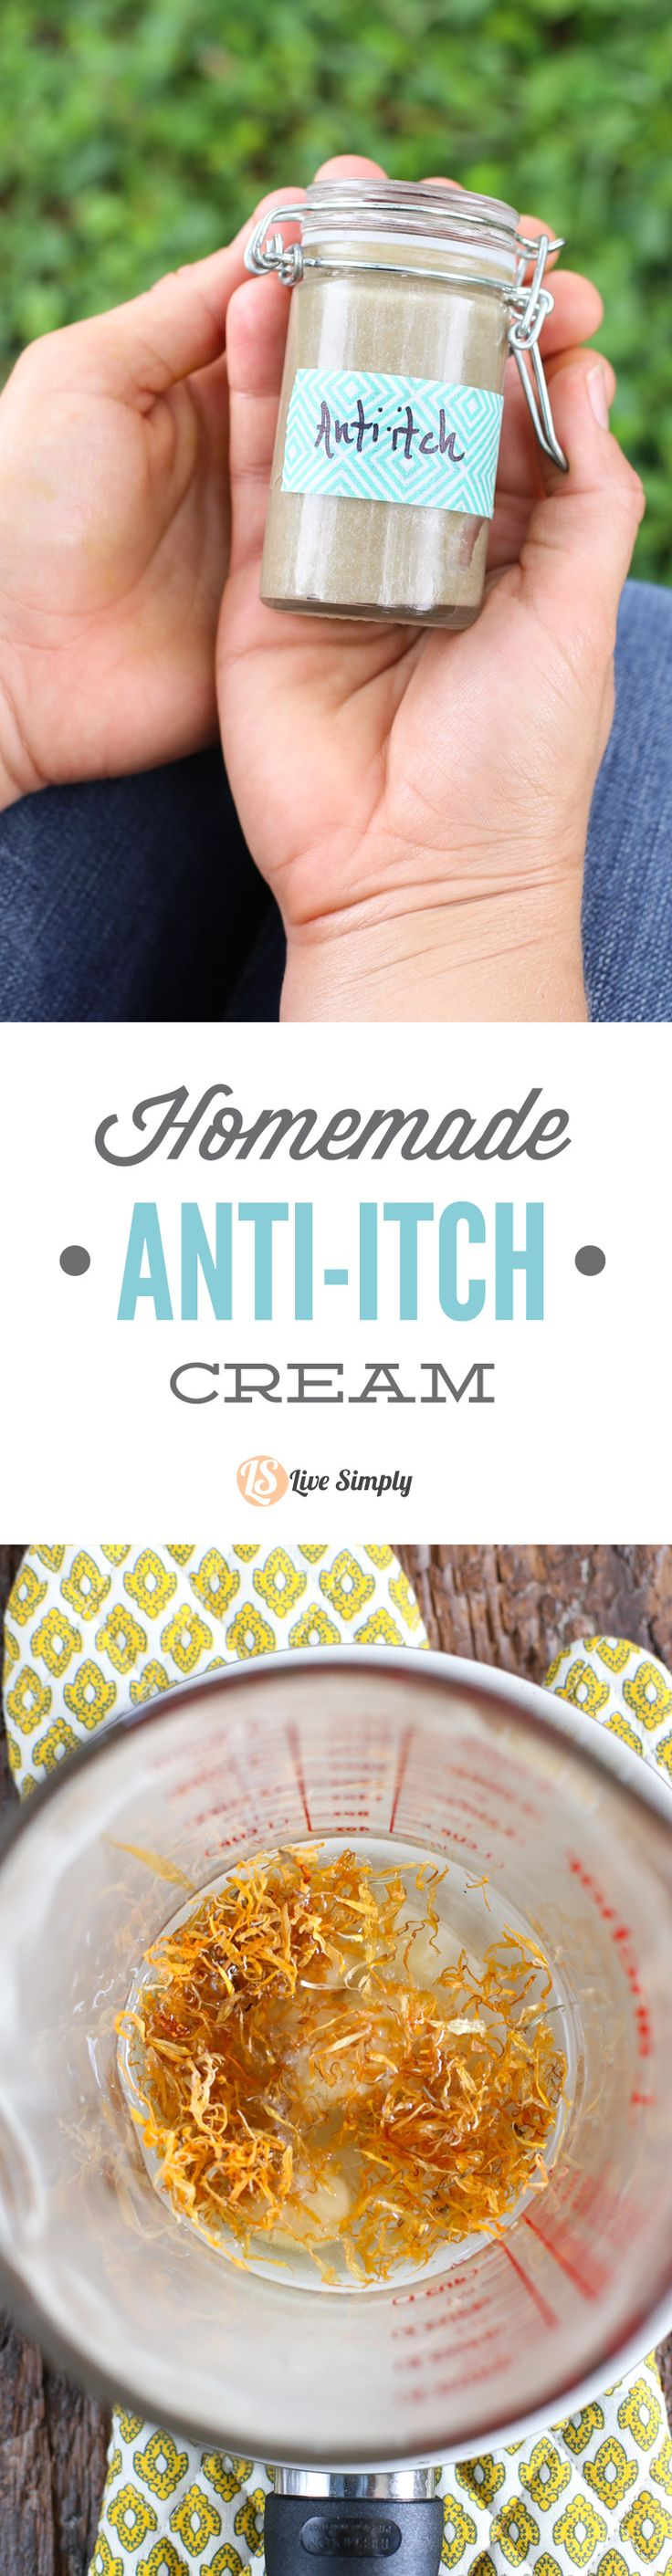 A simple and effective homemade anti-itch cream. This stuff works great on bug bites and plant sensitivities. No yucky ingredients. http://livesimply.me/2015/06/14/homemade-anti-itch-cream/